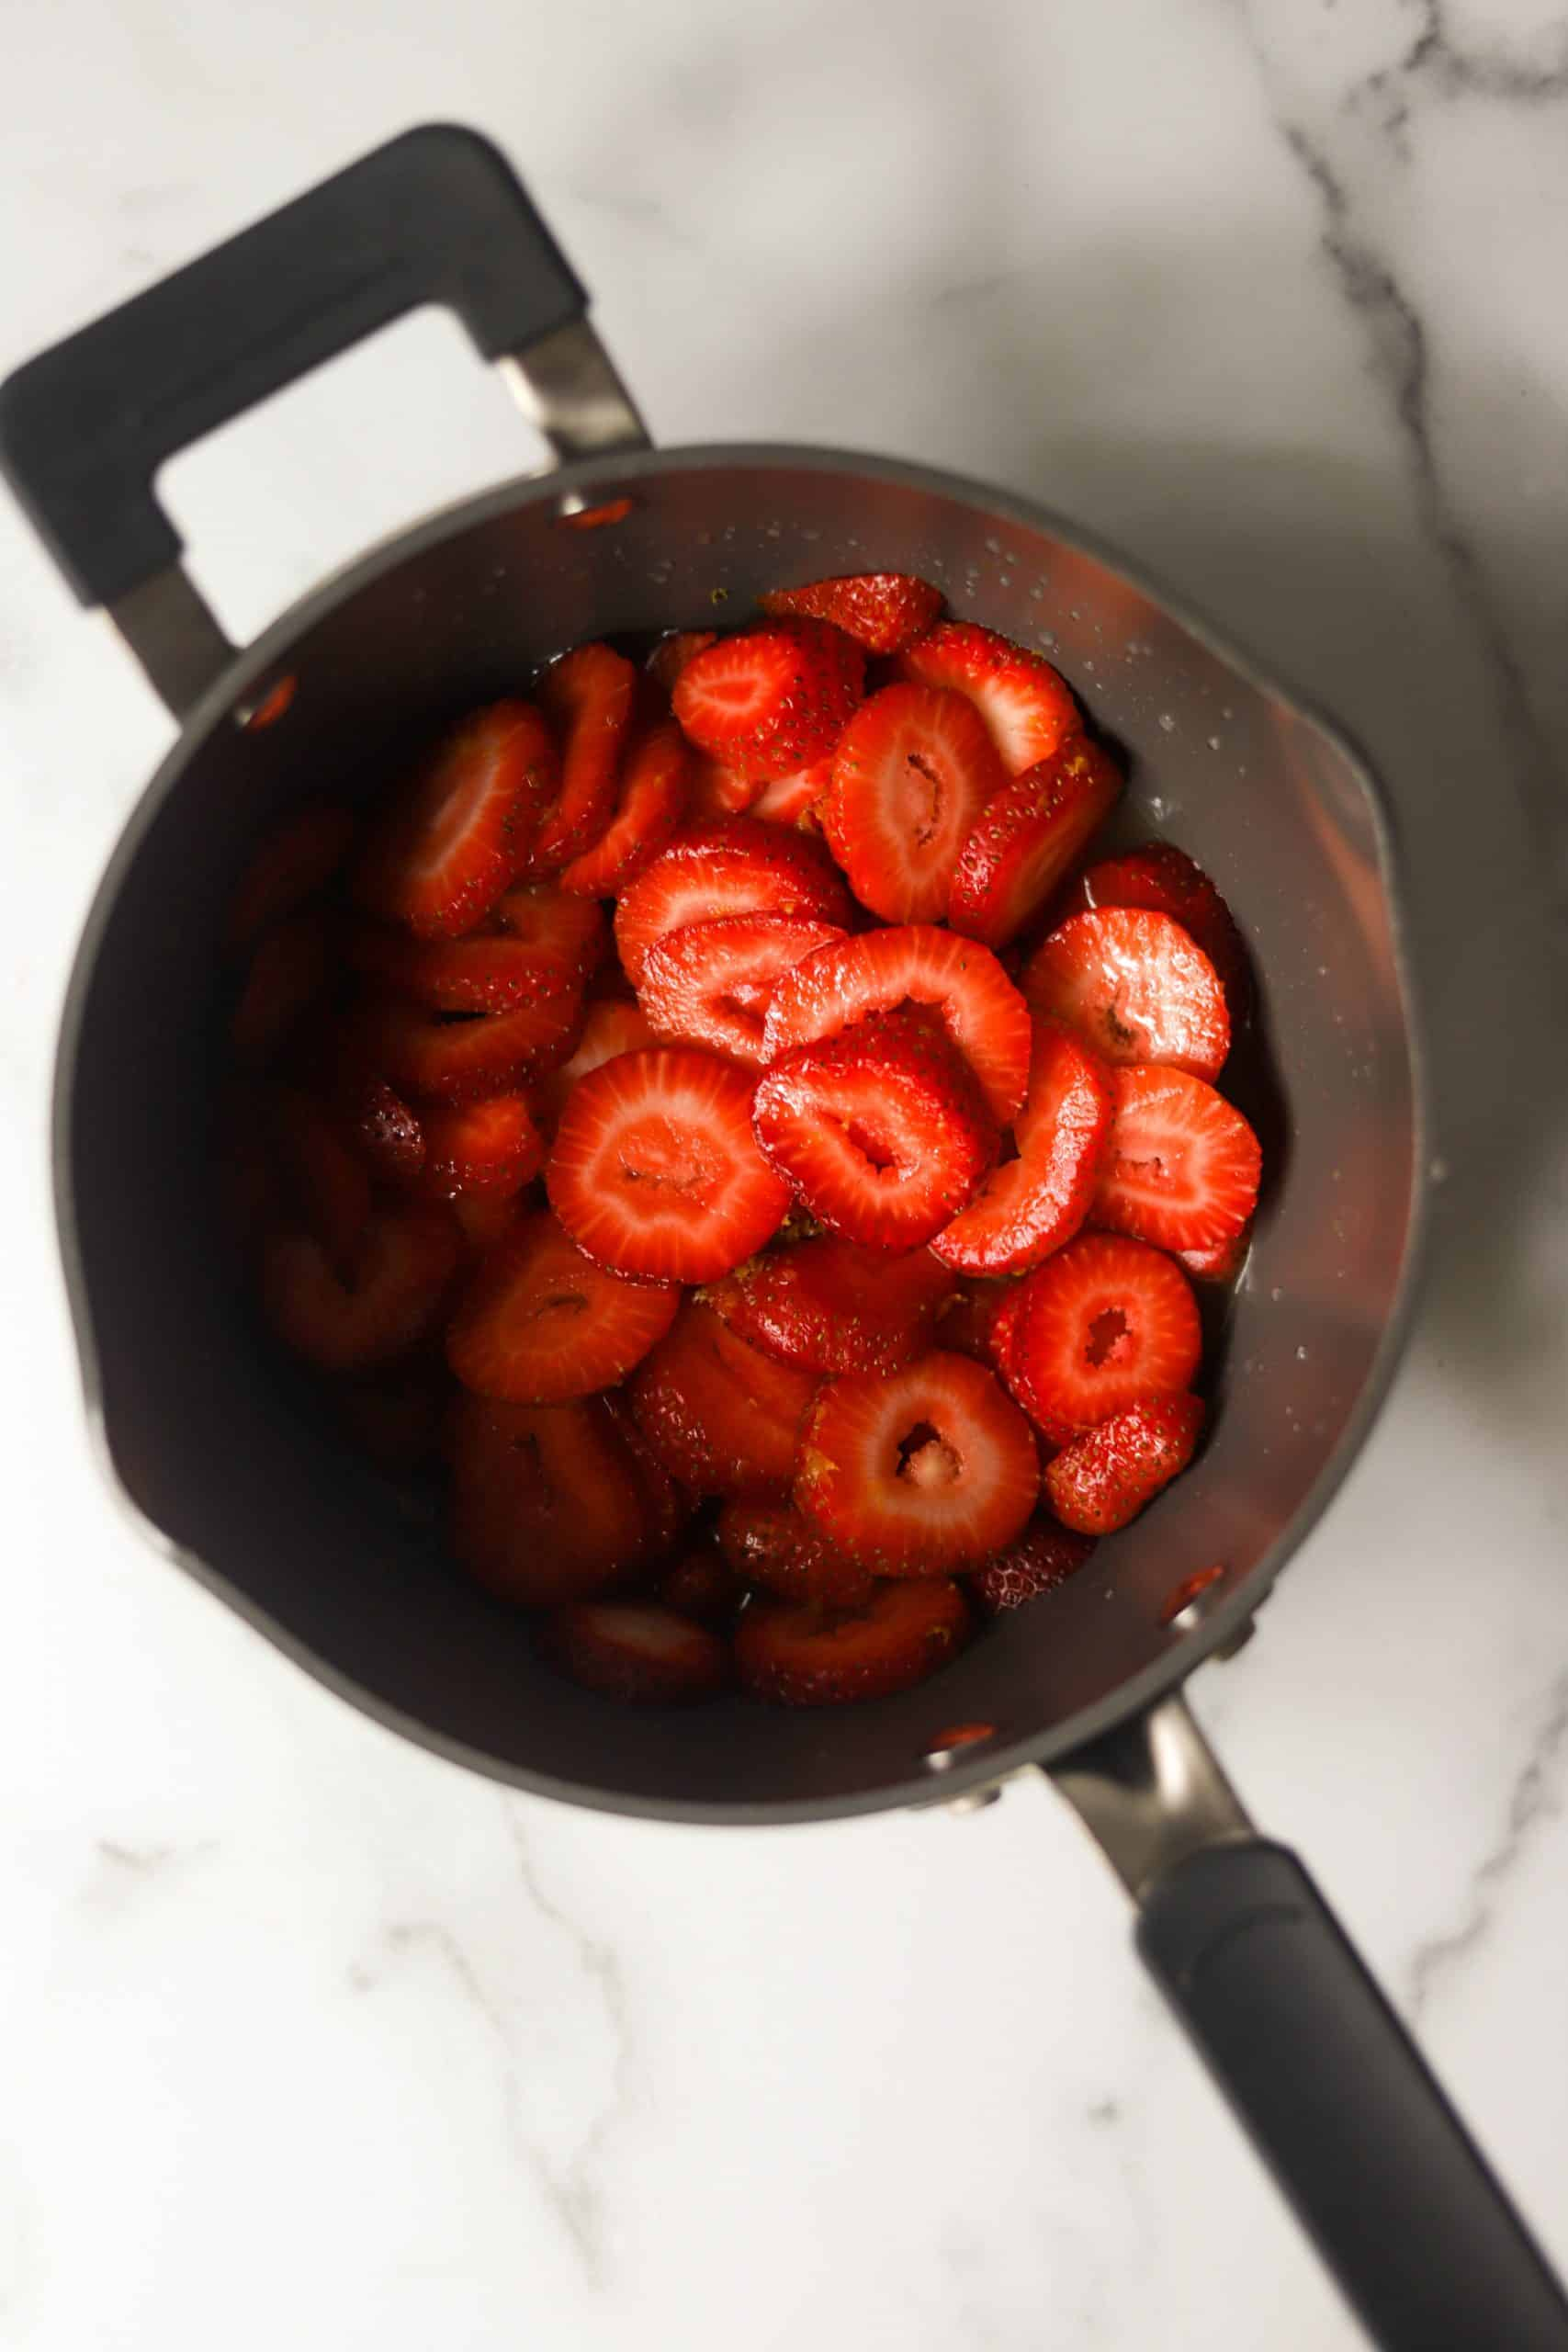 A saucepan filled with strawberries.